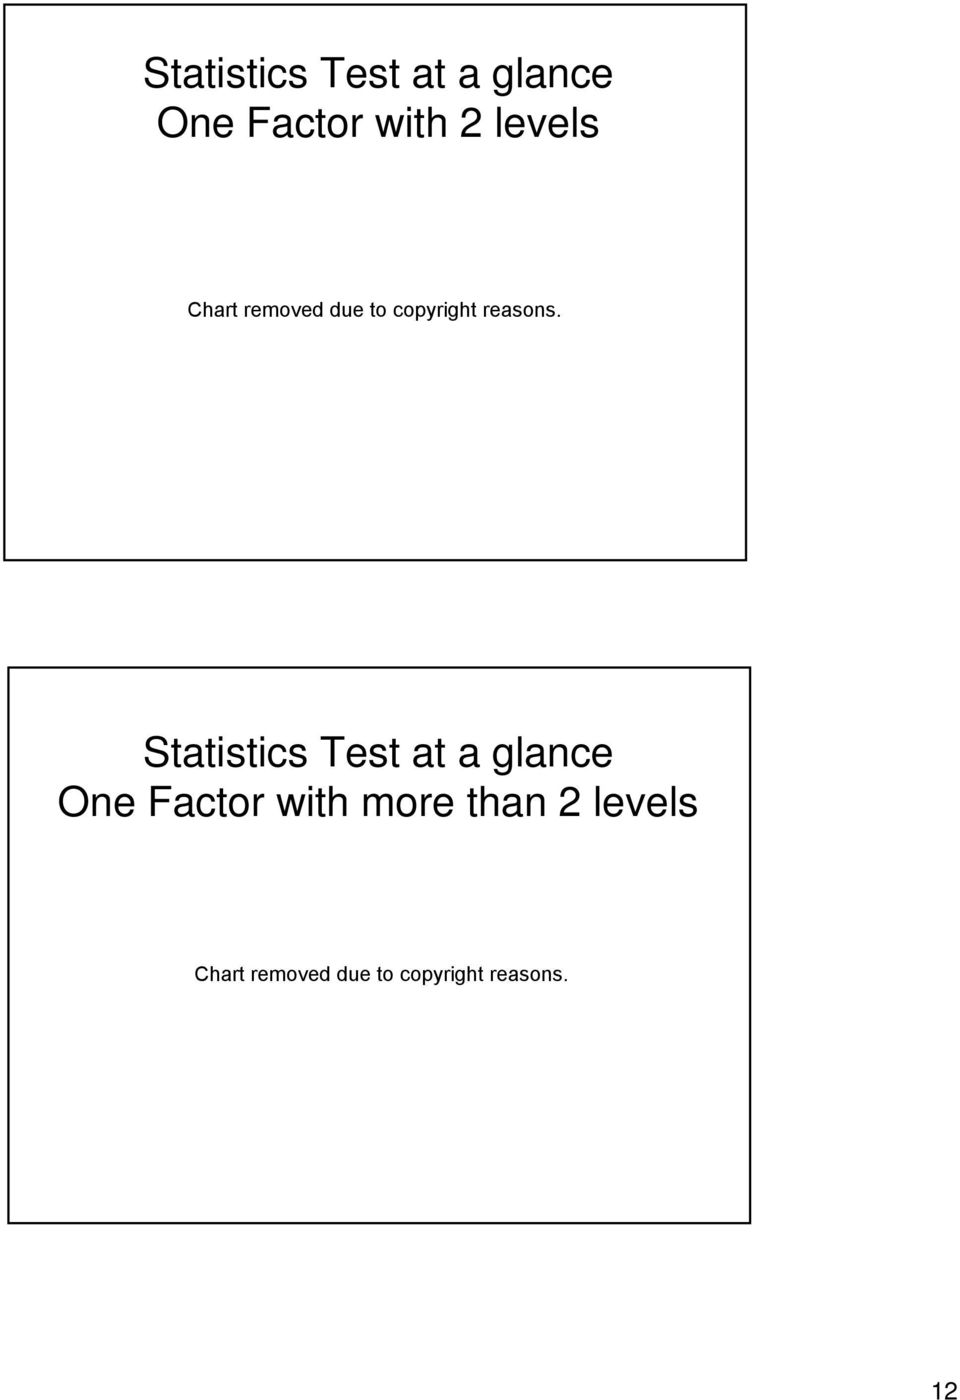 Statistics Test at a glance One Factor with more